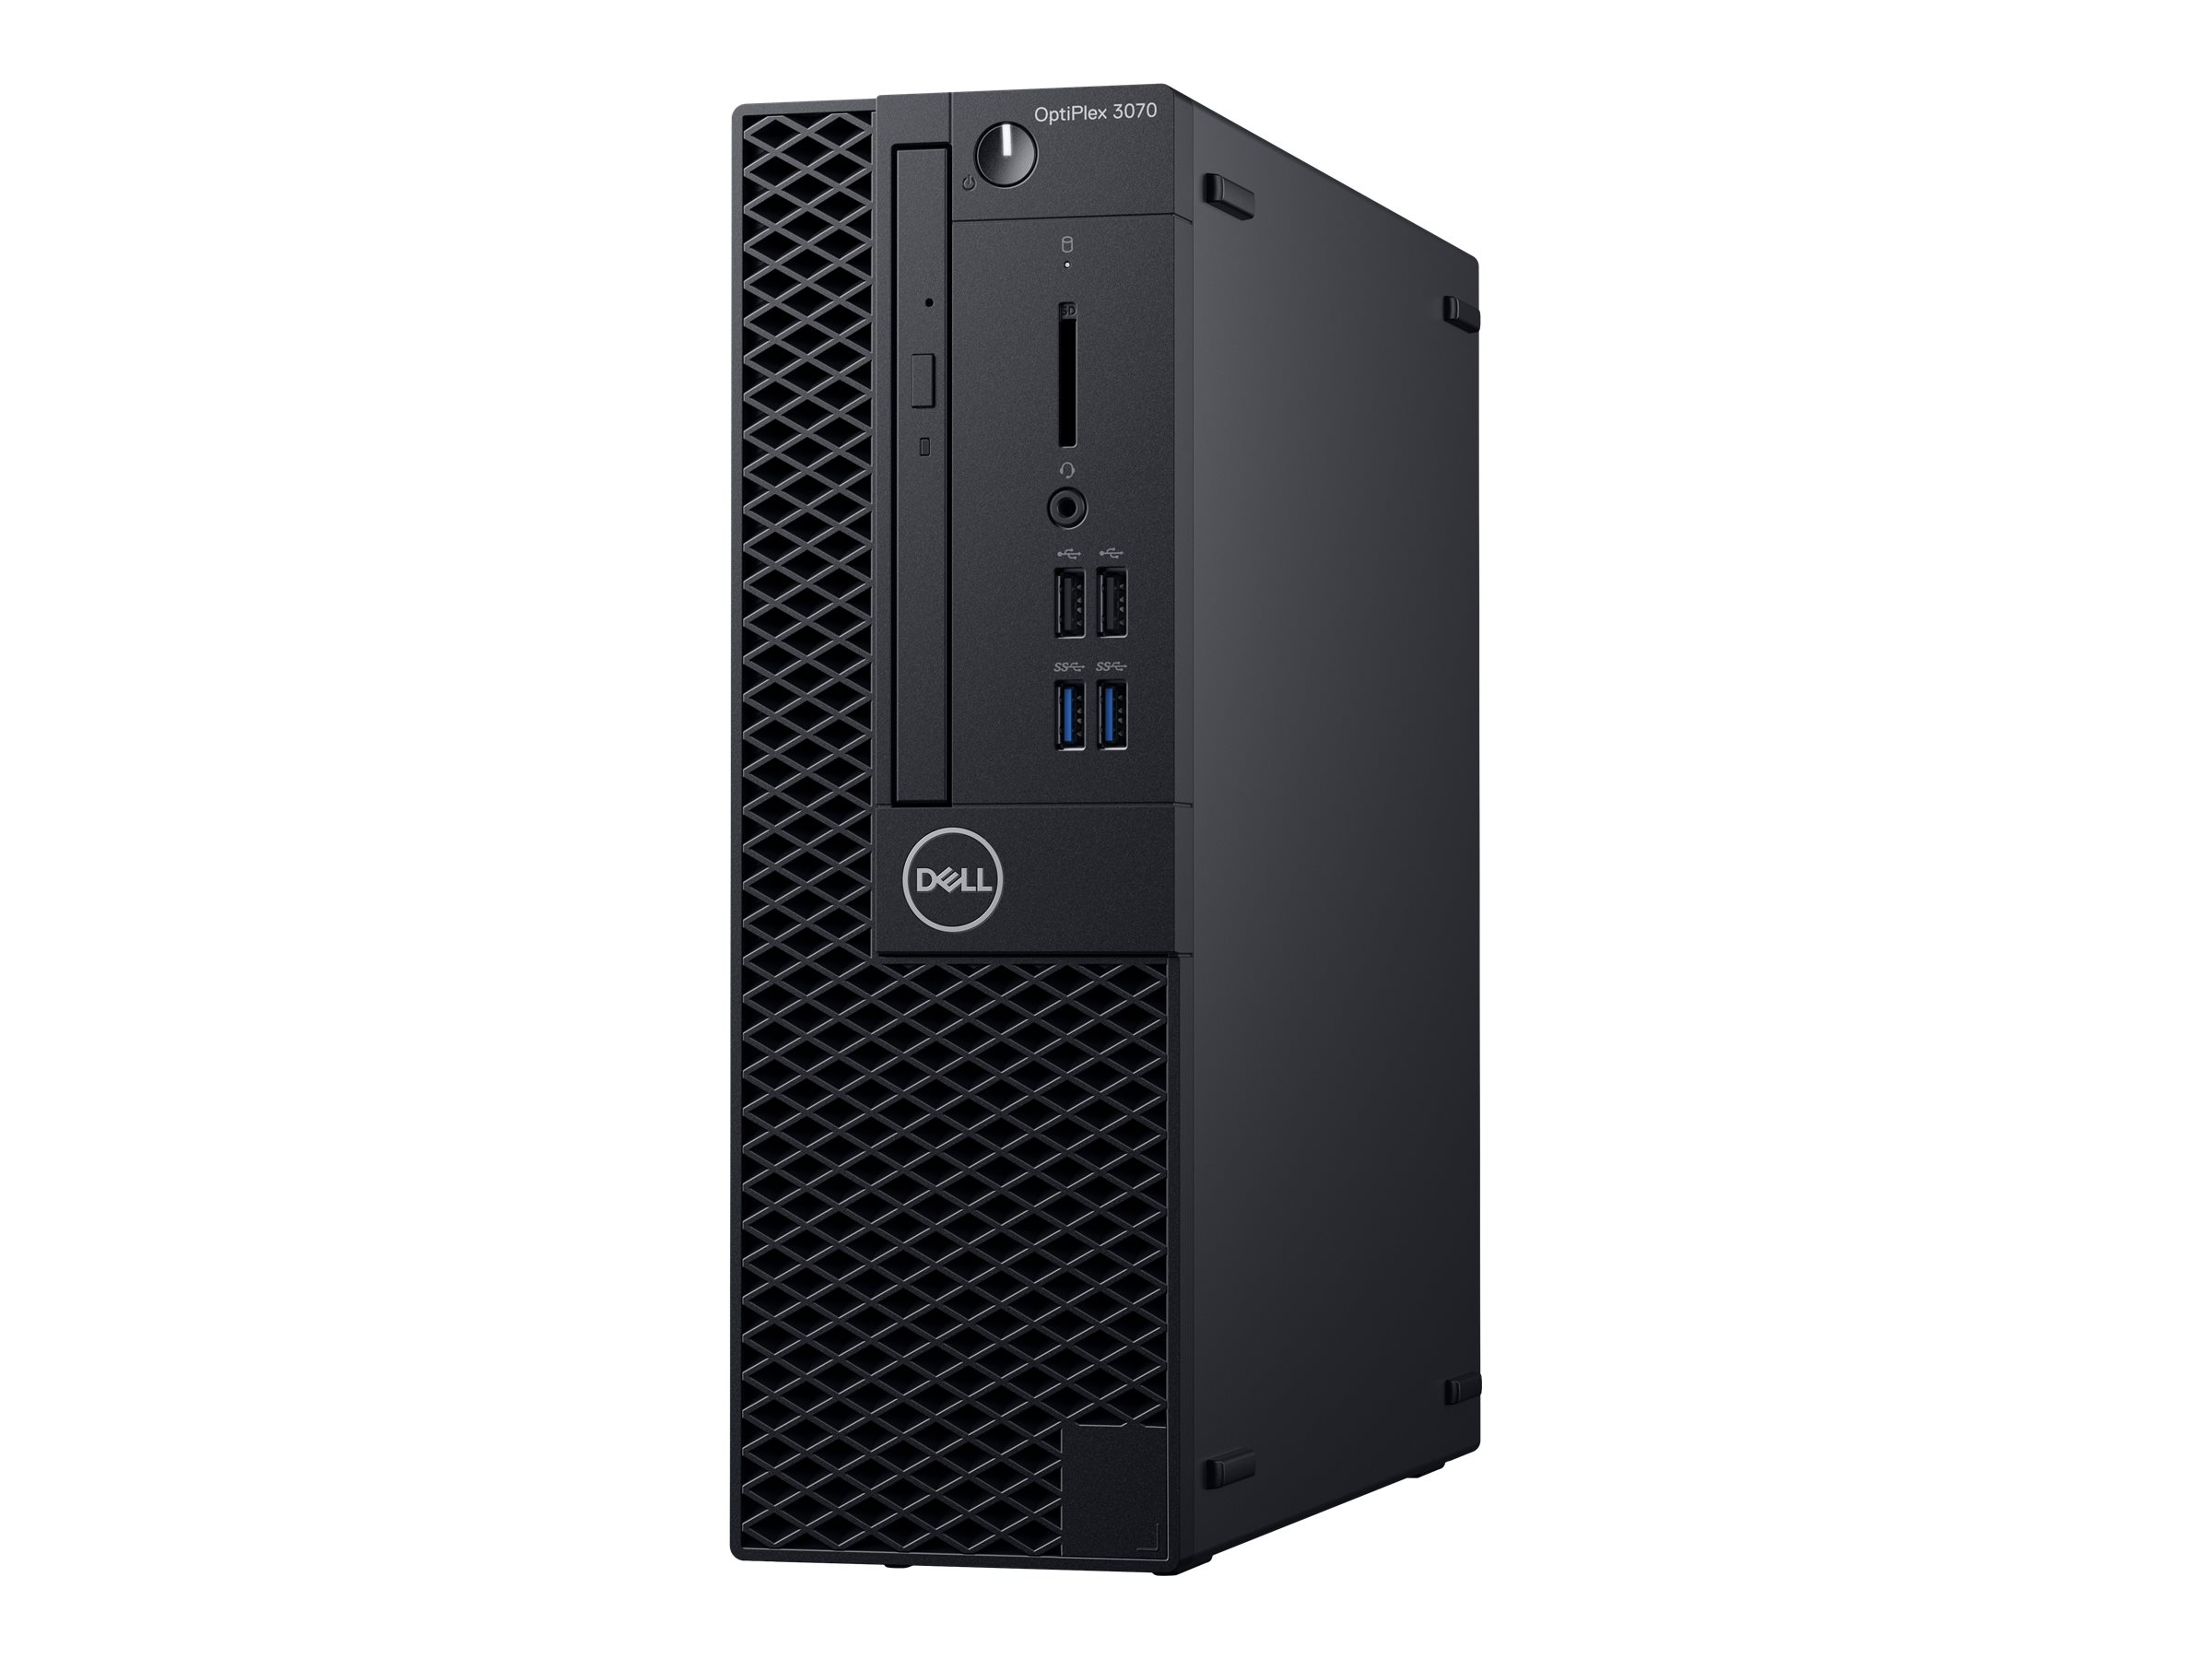 Dell OptiPlex 3070 - SFF - Core i5 9500 3 GHz - 4 GB - 500 GB - with 3-year ProSupport Plus NBD